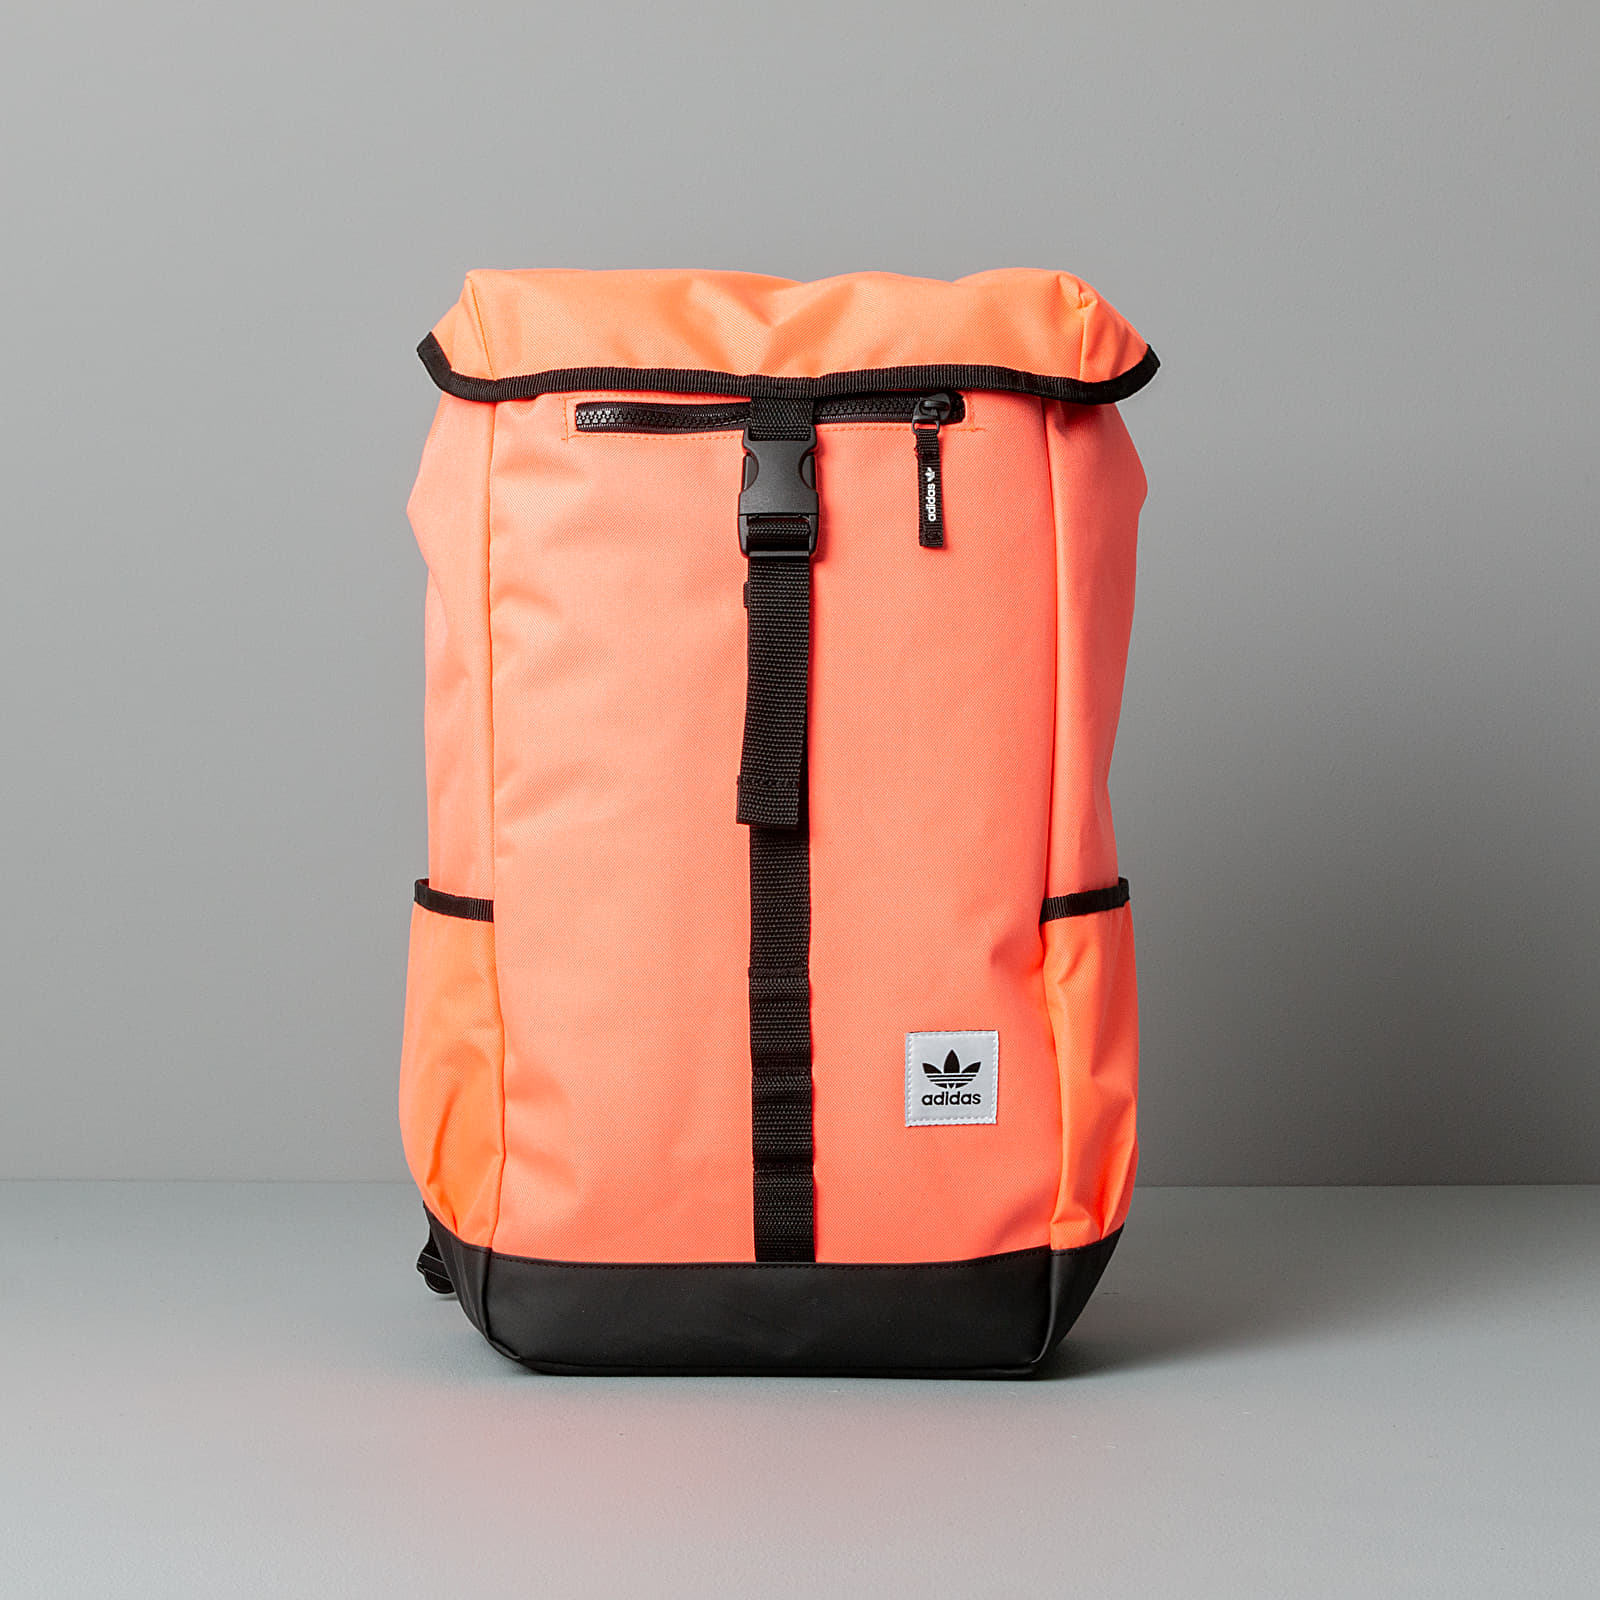 adidas Premium Toploader Backpack